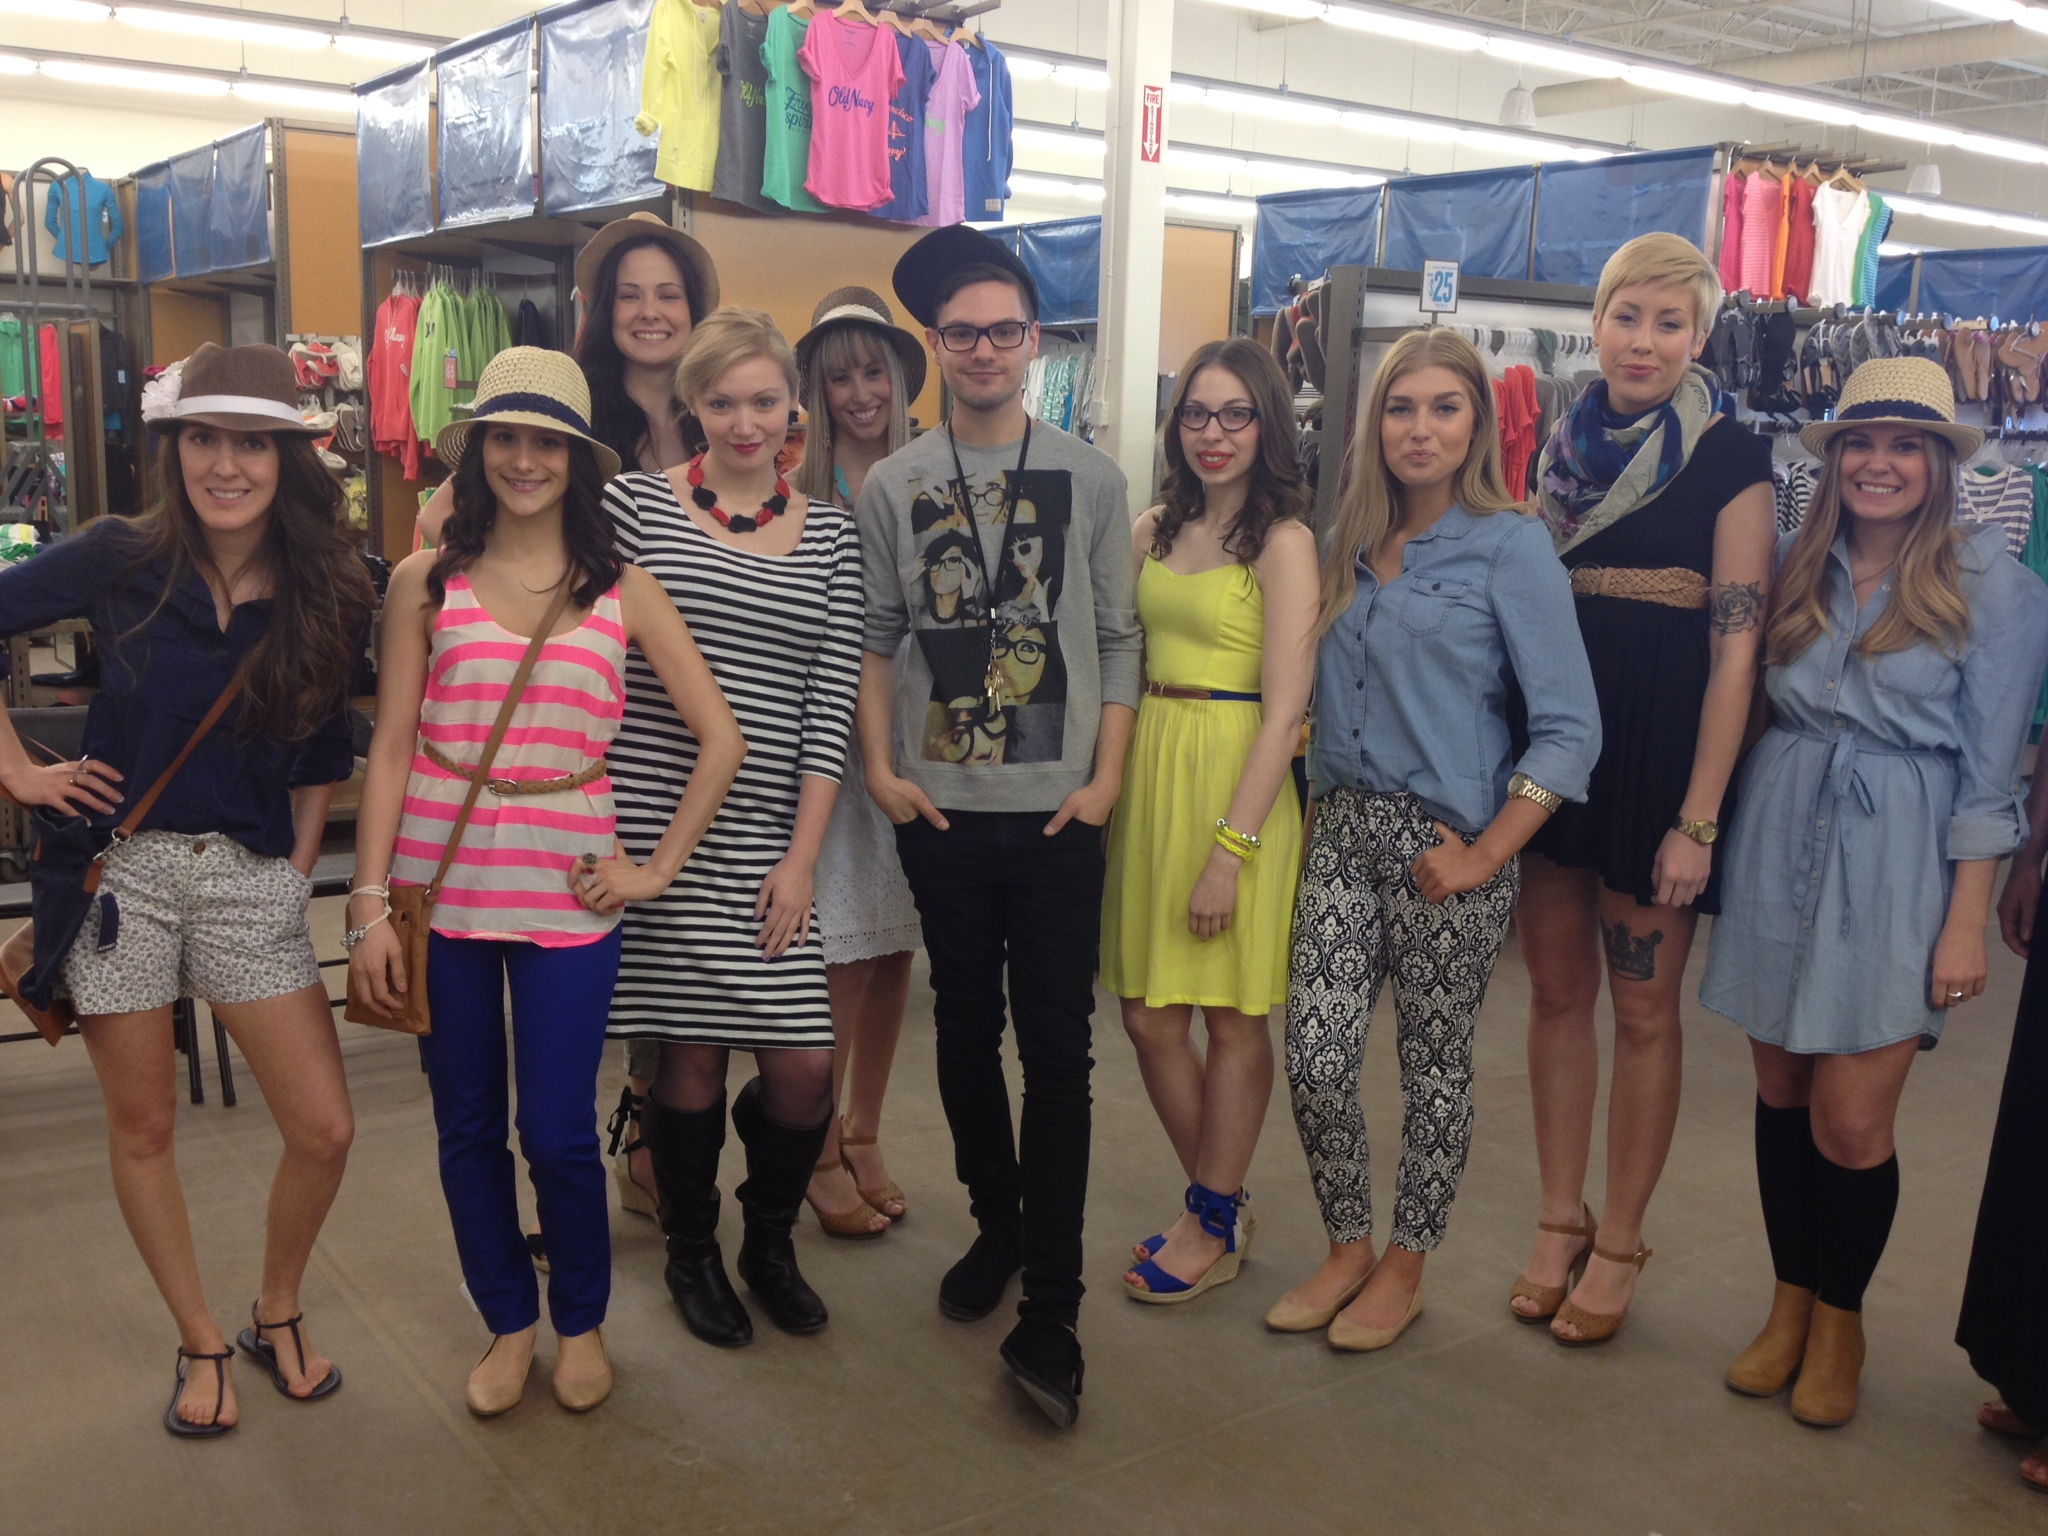 Old Navy fashion show!